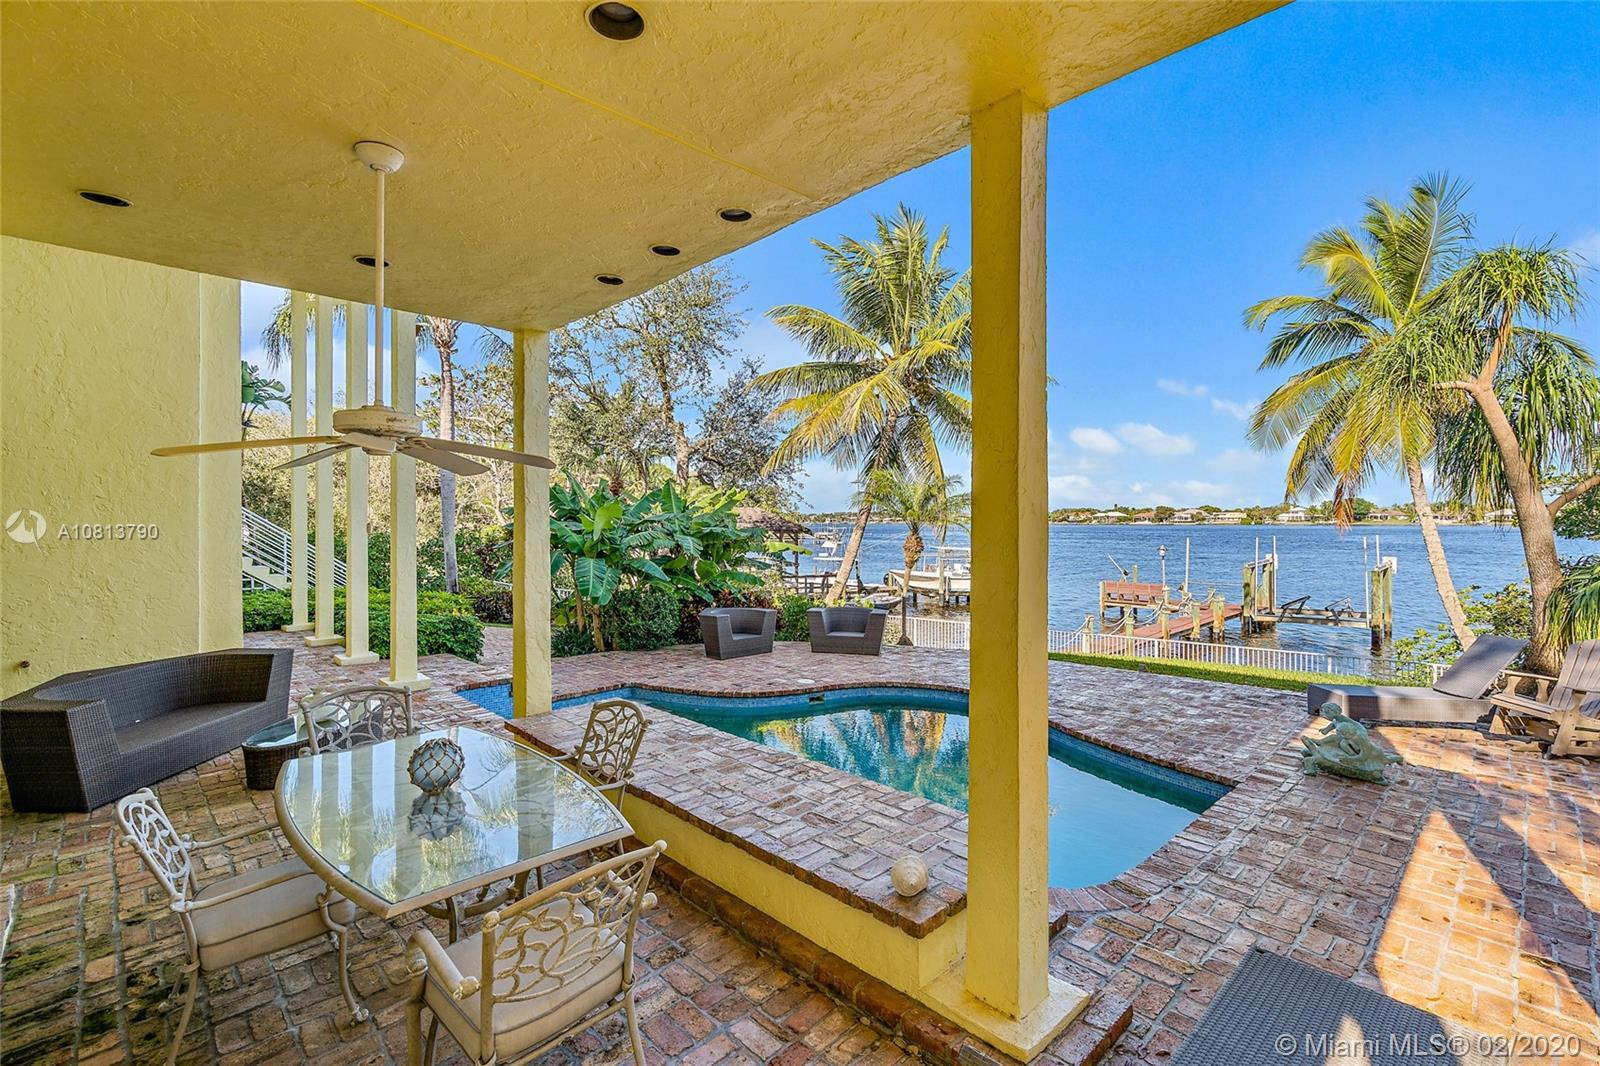 This delightful home is perfect for the person looking for breathtaking water views and charm, all t